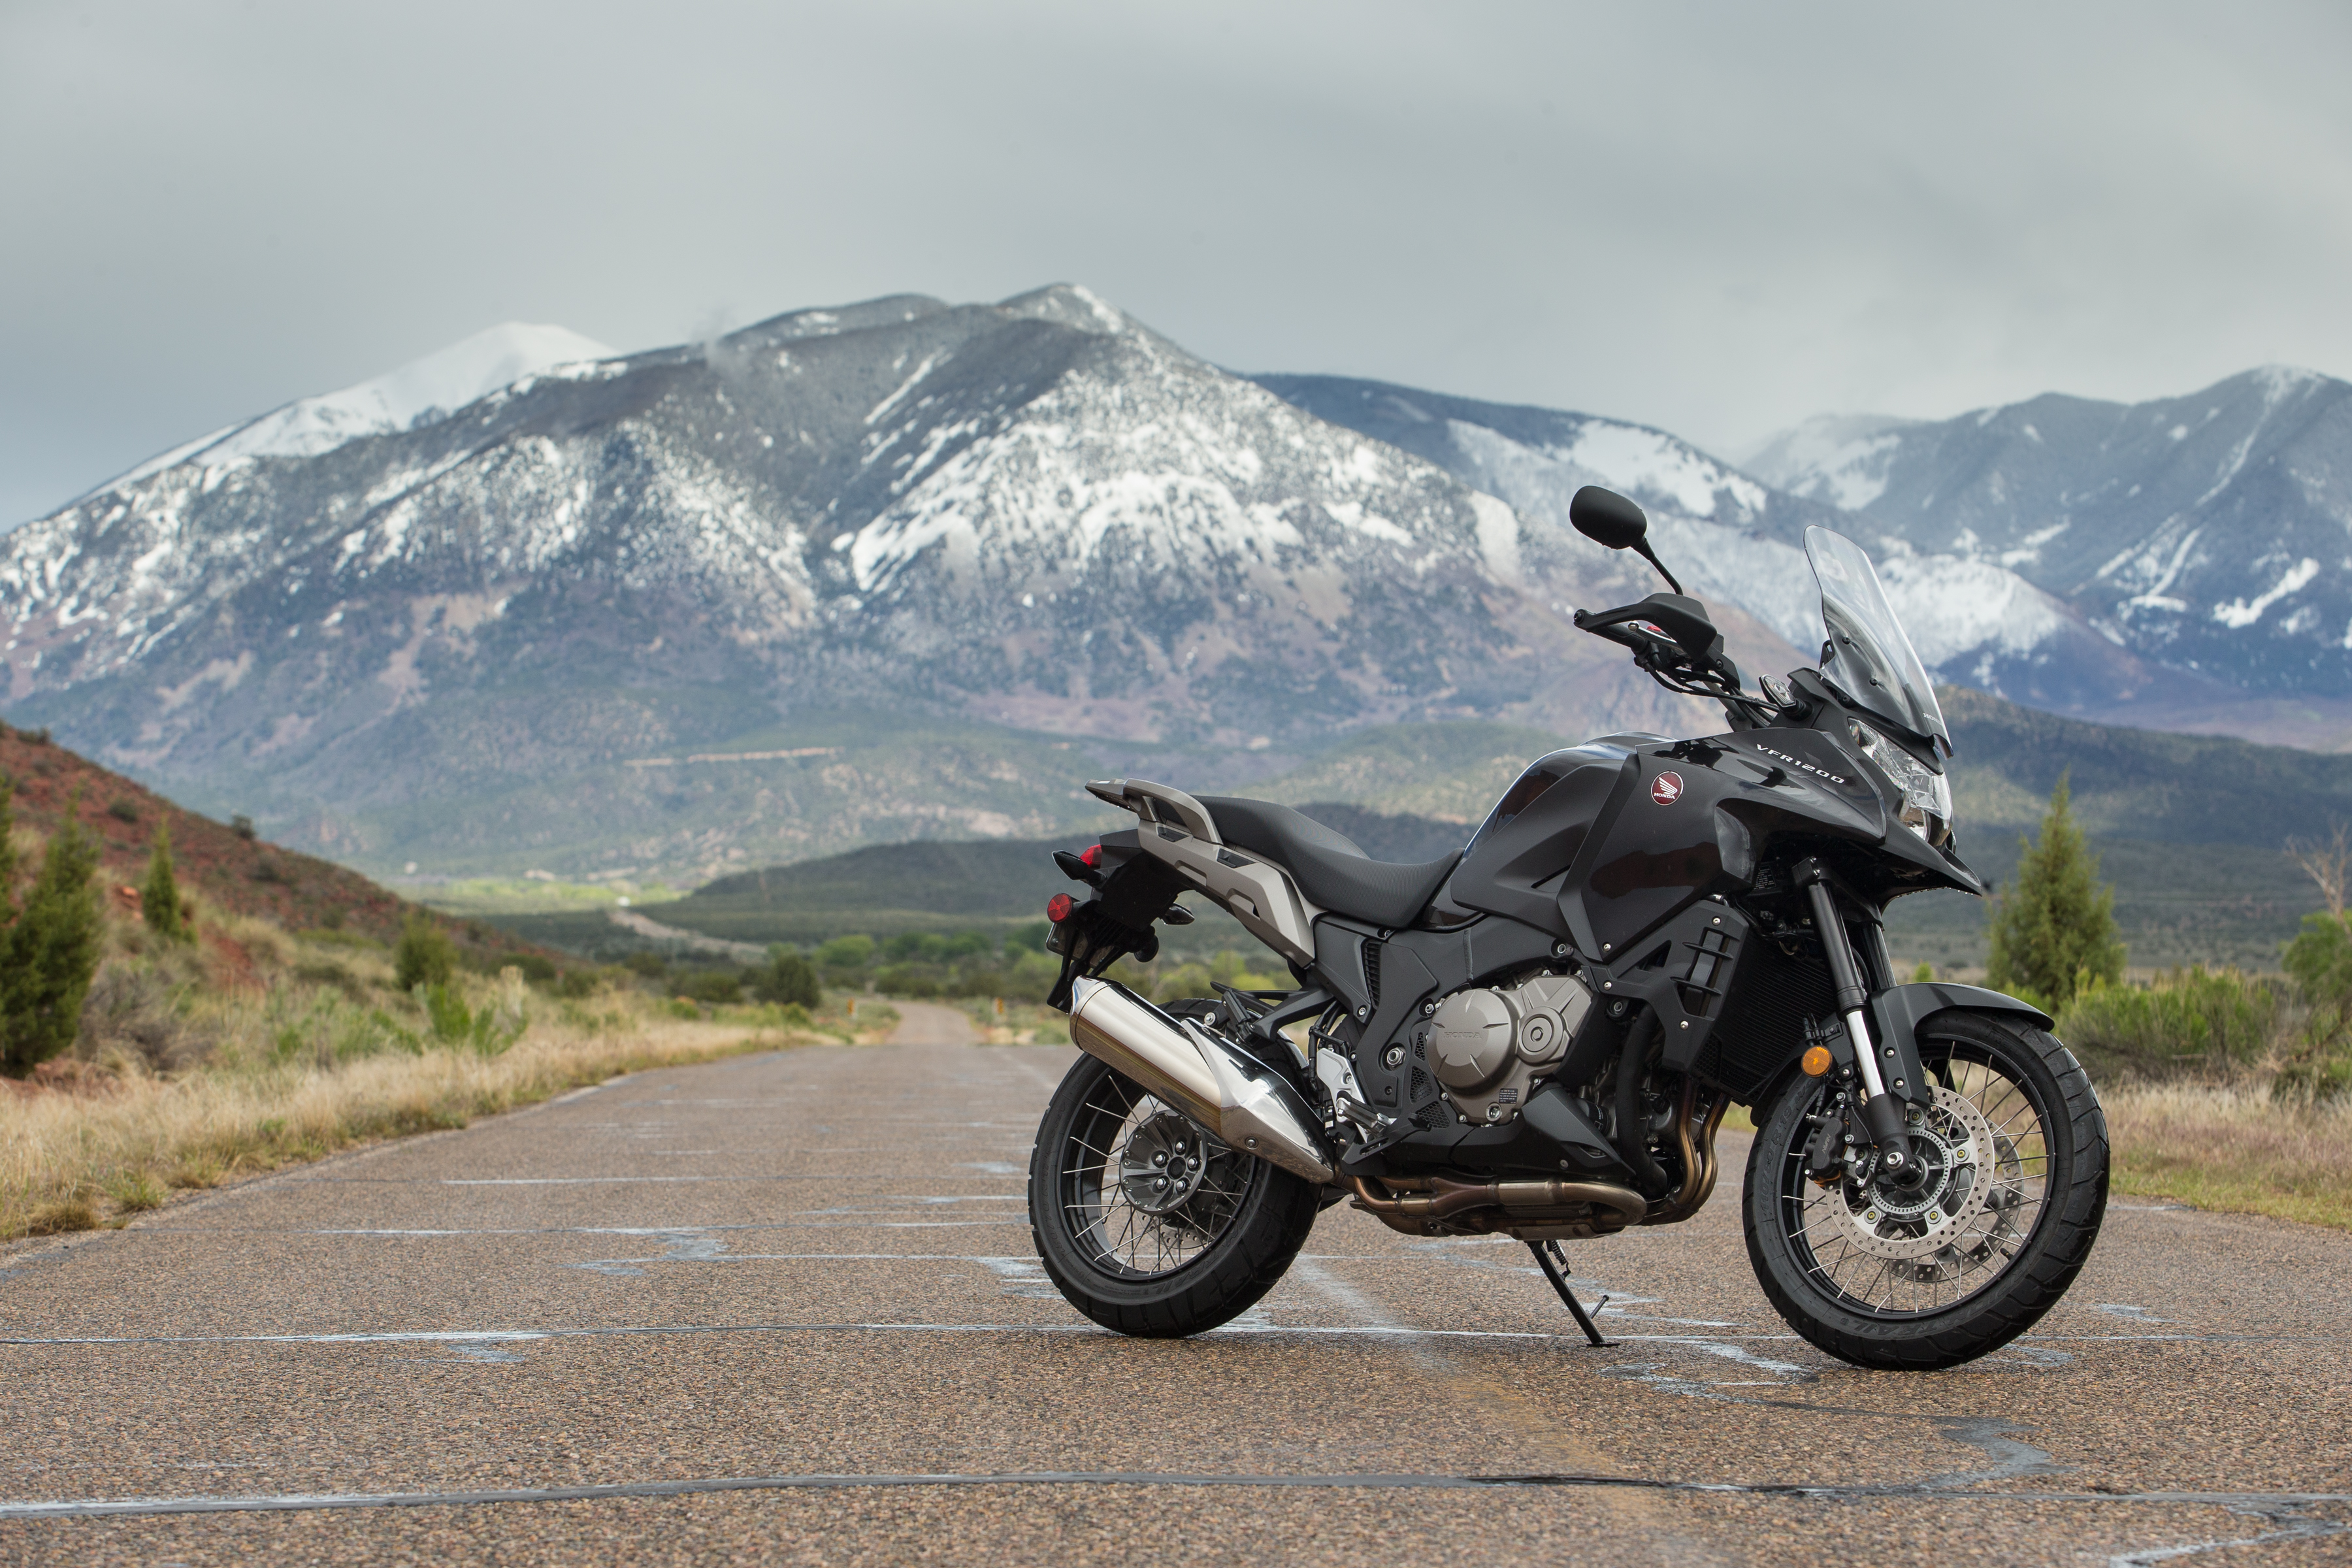 A quick ride on Honda\'s other adventure bike: The VFR1200X Crosstourer